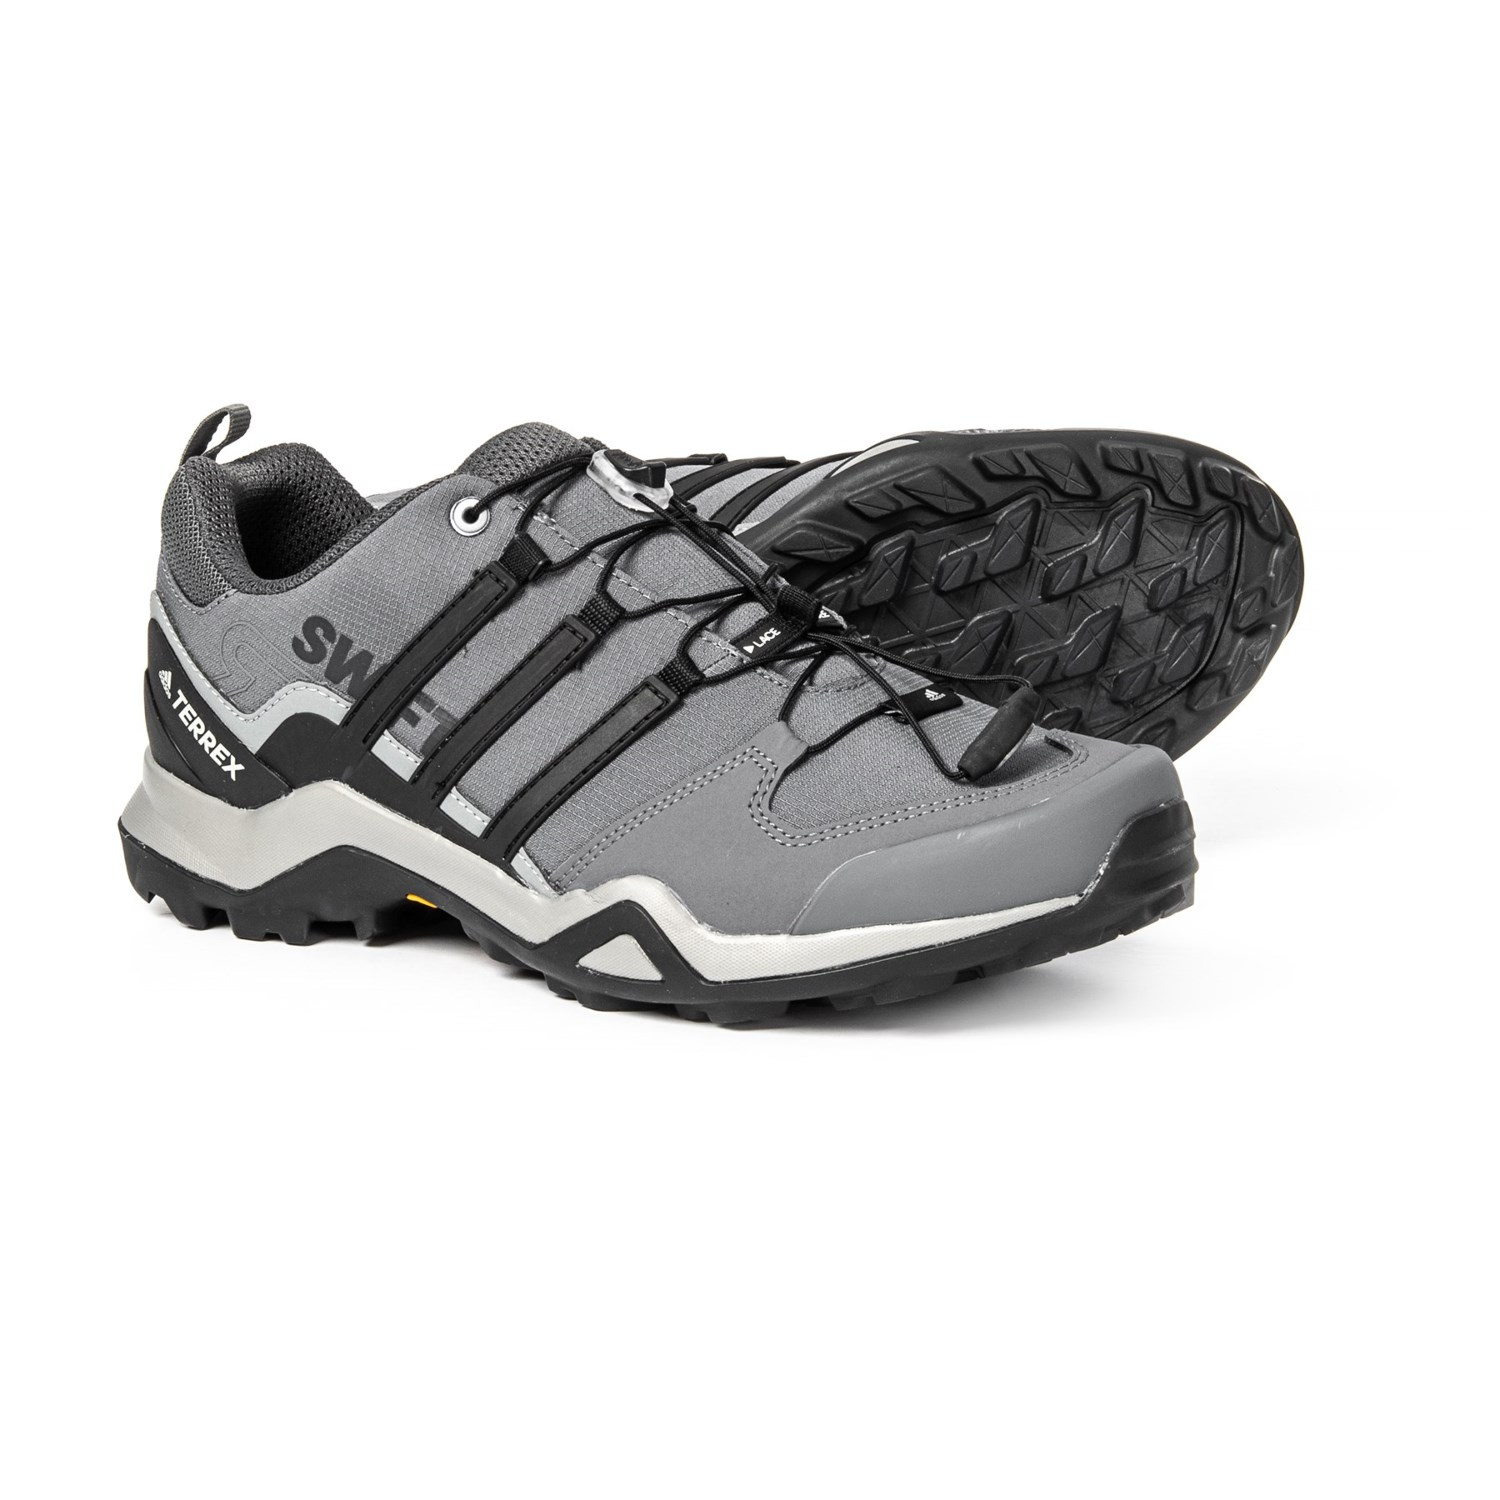 adidas Terrex Swift R2 Hiking Shoes (For Men) in Grey Three Black  552615135